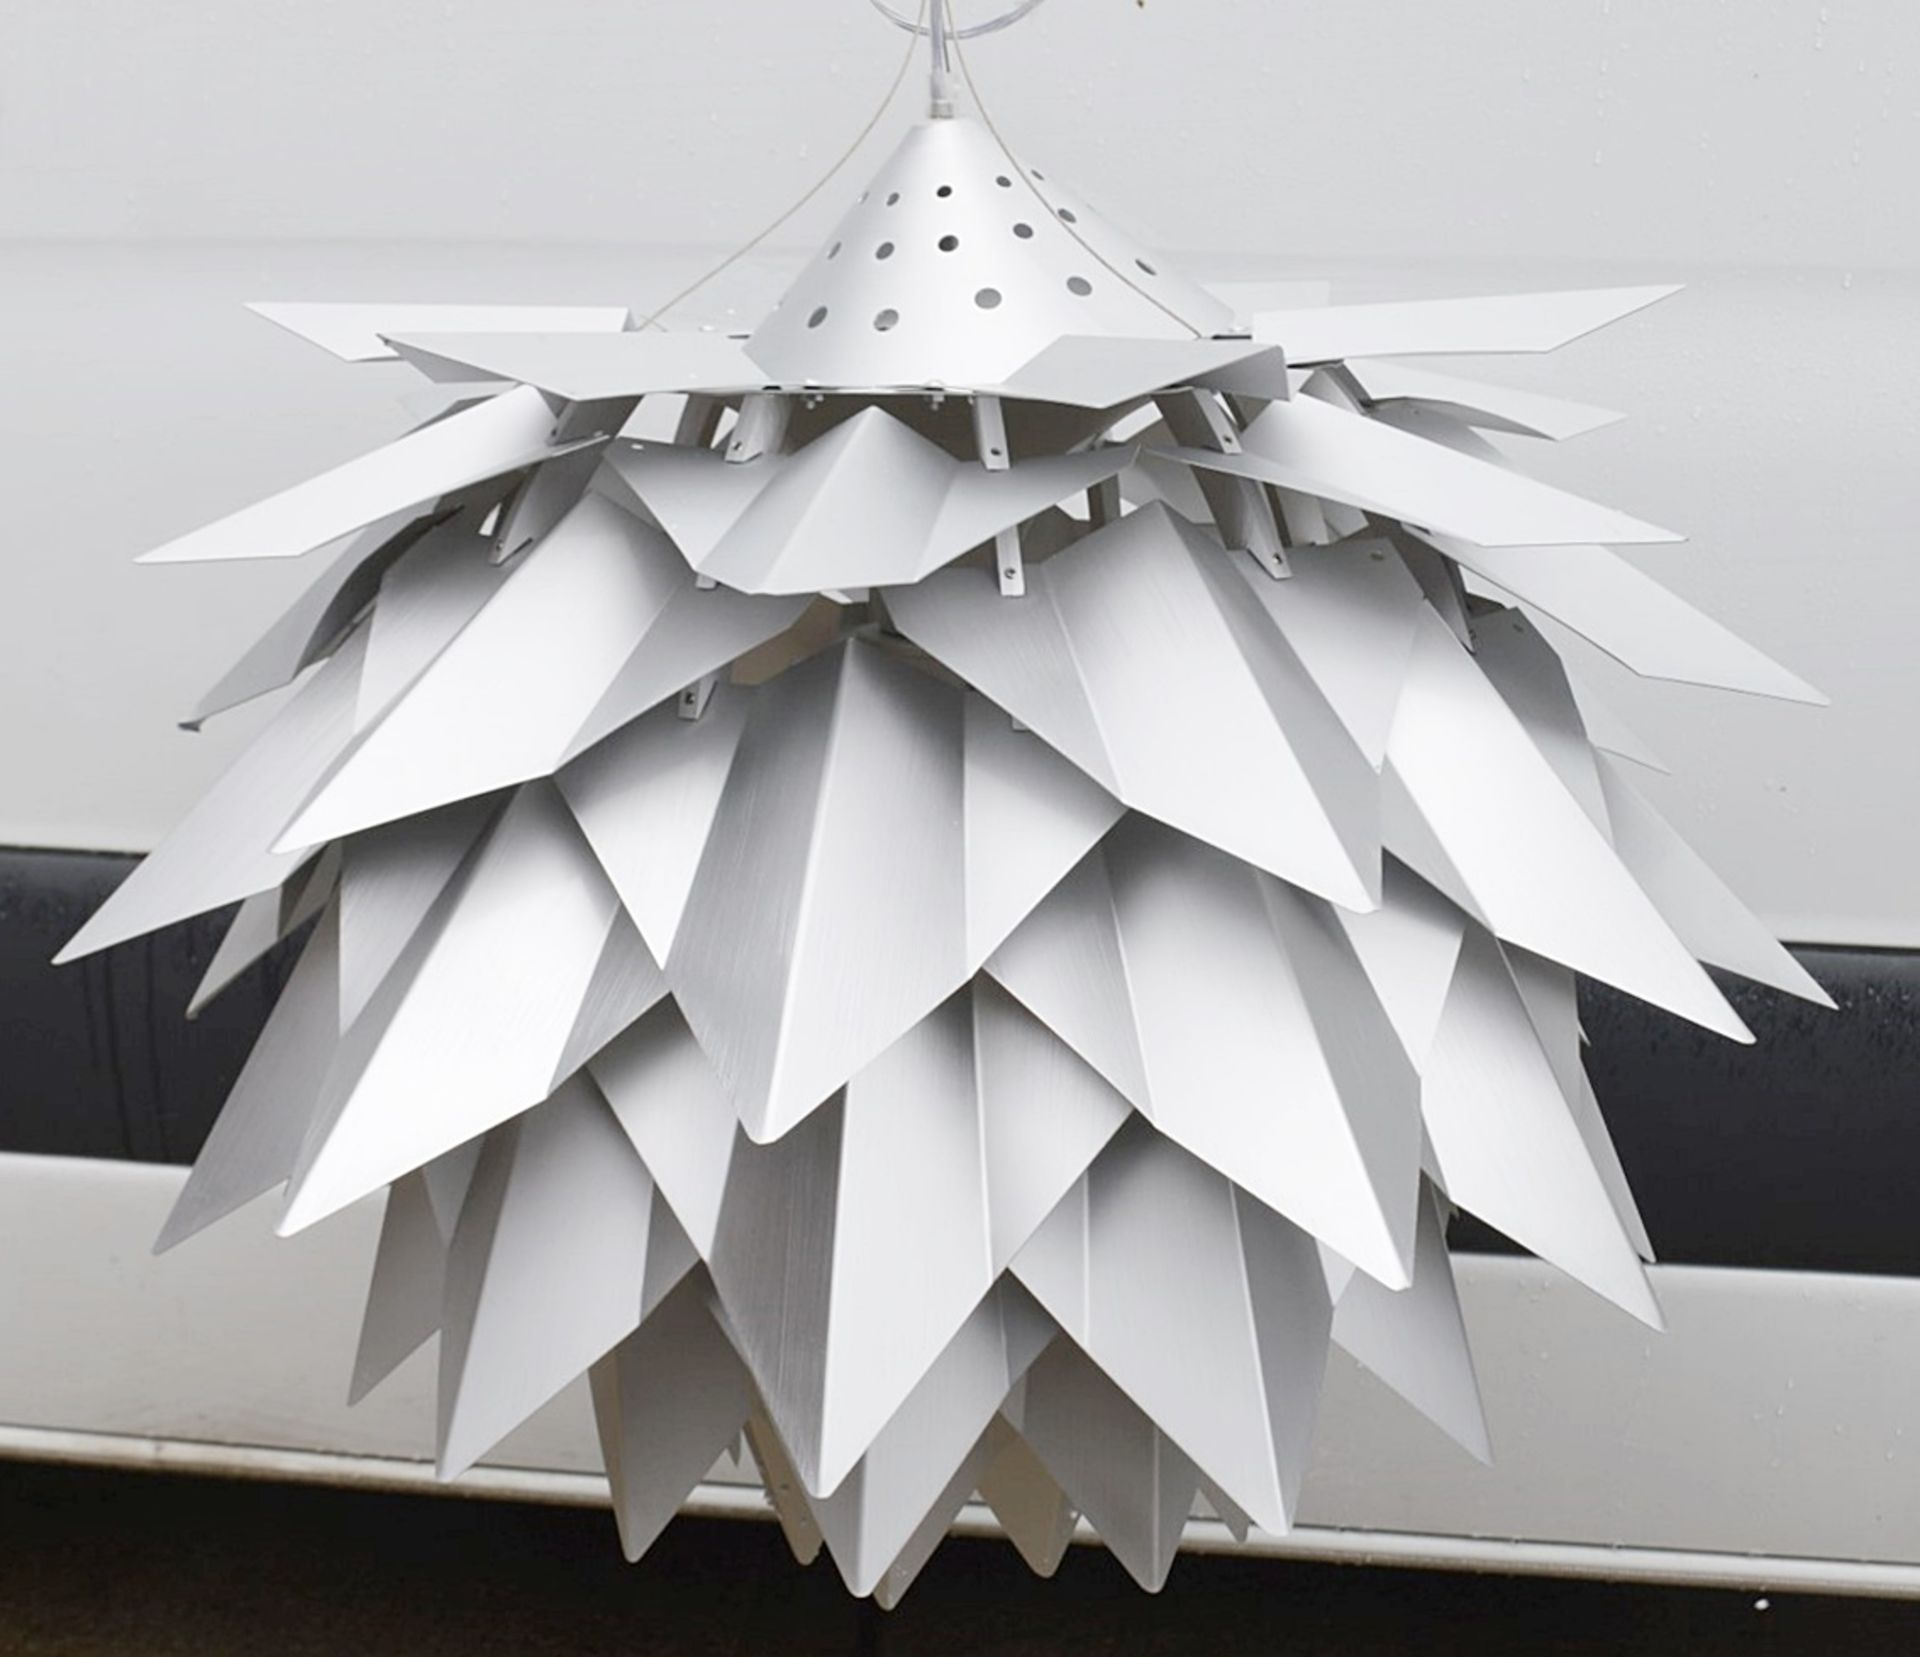 1 x 'Comosus' Statement Ceiling Pendant Light In Aluminium With A Brushed Silver Finish - Image 4 of 6